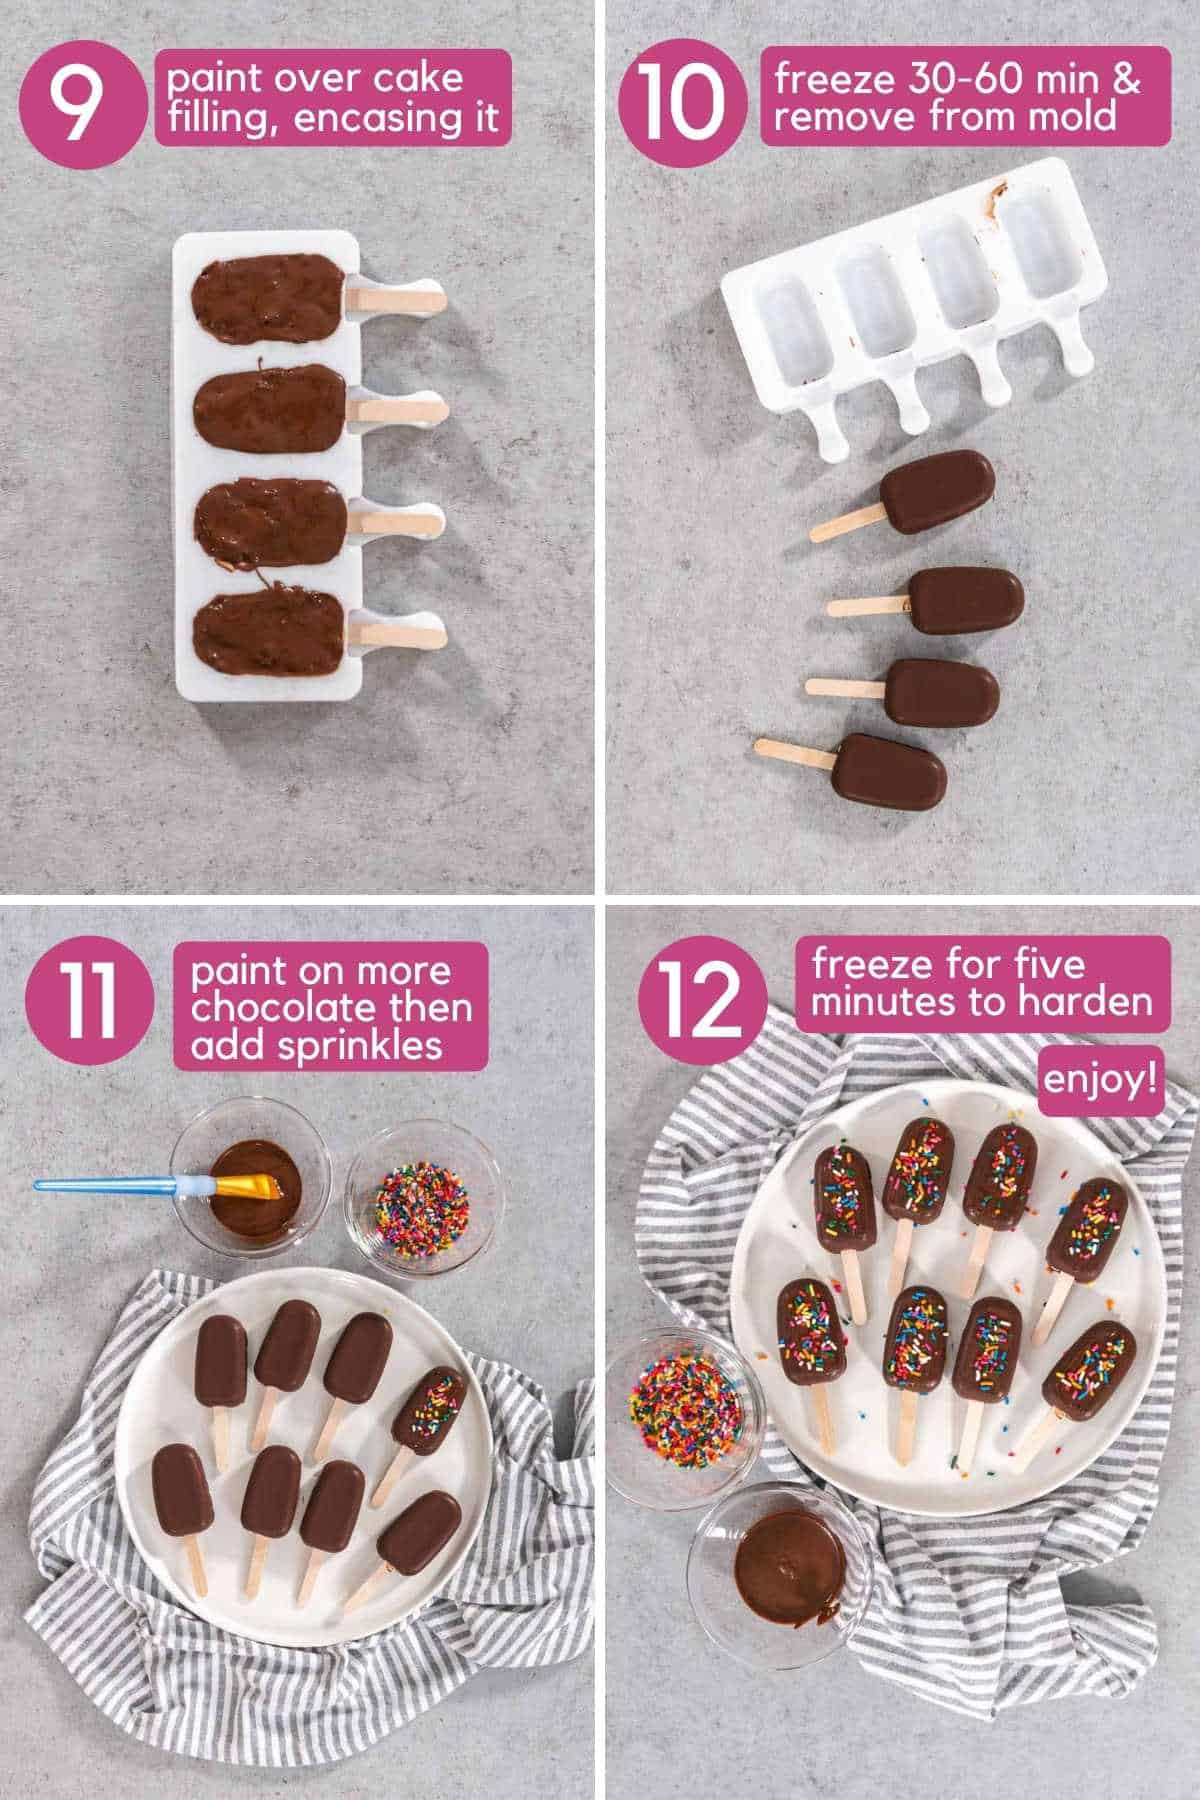 To finish making cakesicles add additional layer of chocolate to enase it, paint on additional chocolate and spread on sprinkles.